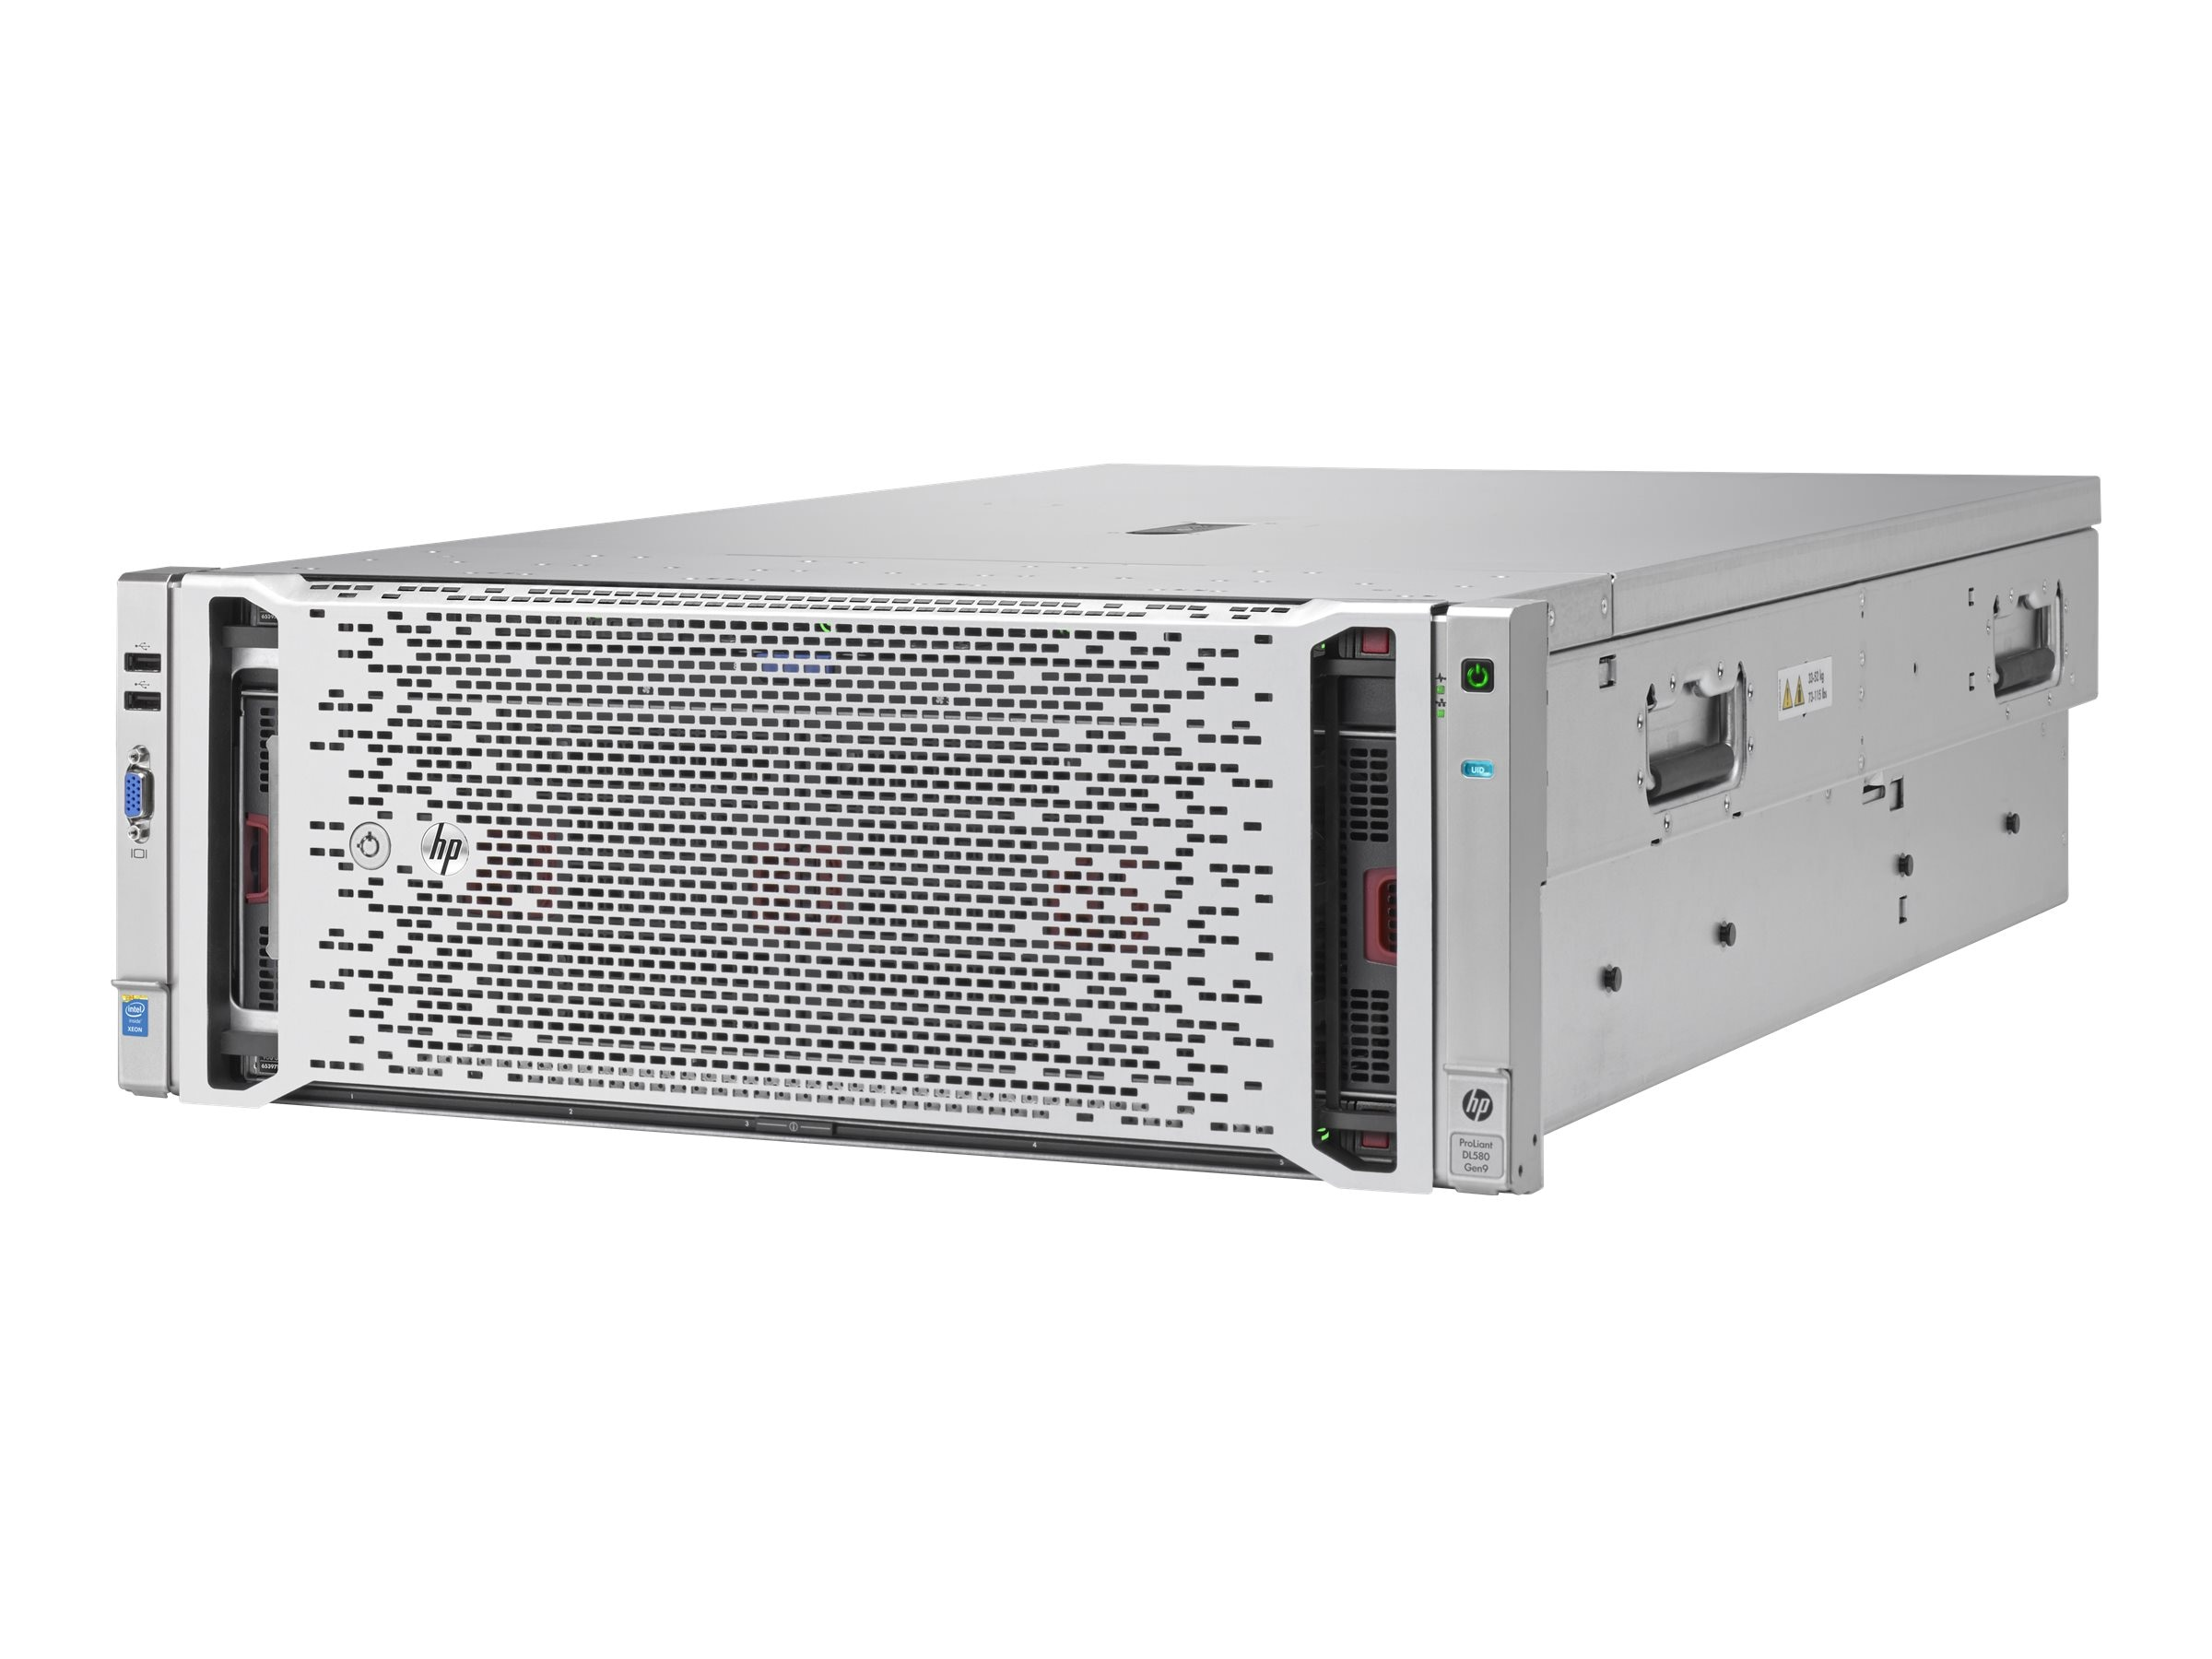 HPE ProLiant DL580 Gen9 Intel 2.3GHz Xeon, 793309-S01, 20867171, Servers